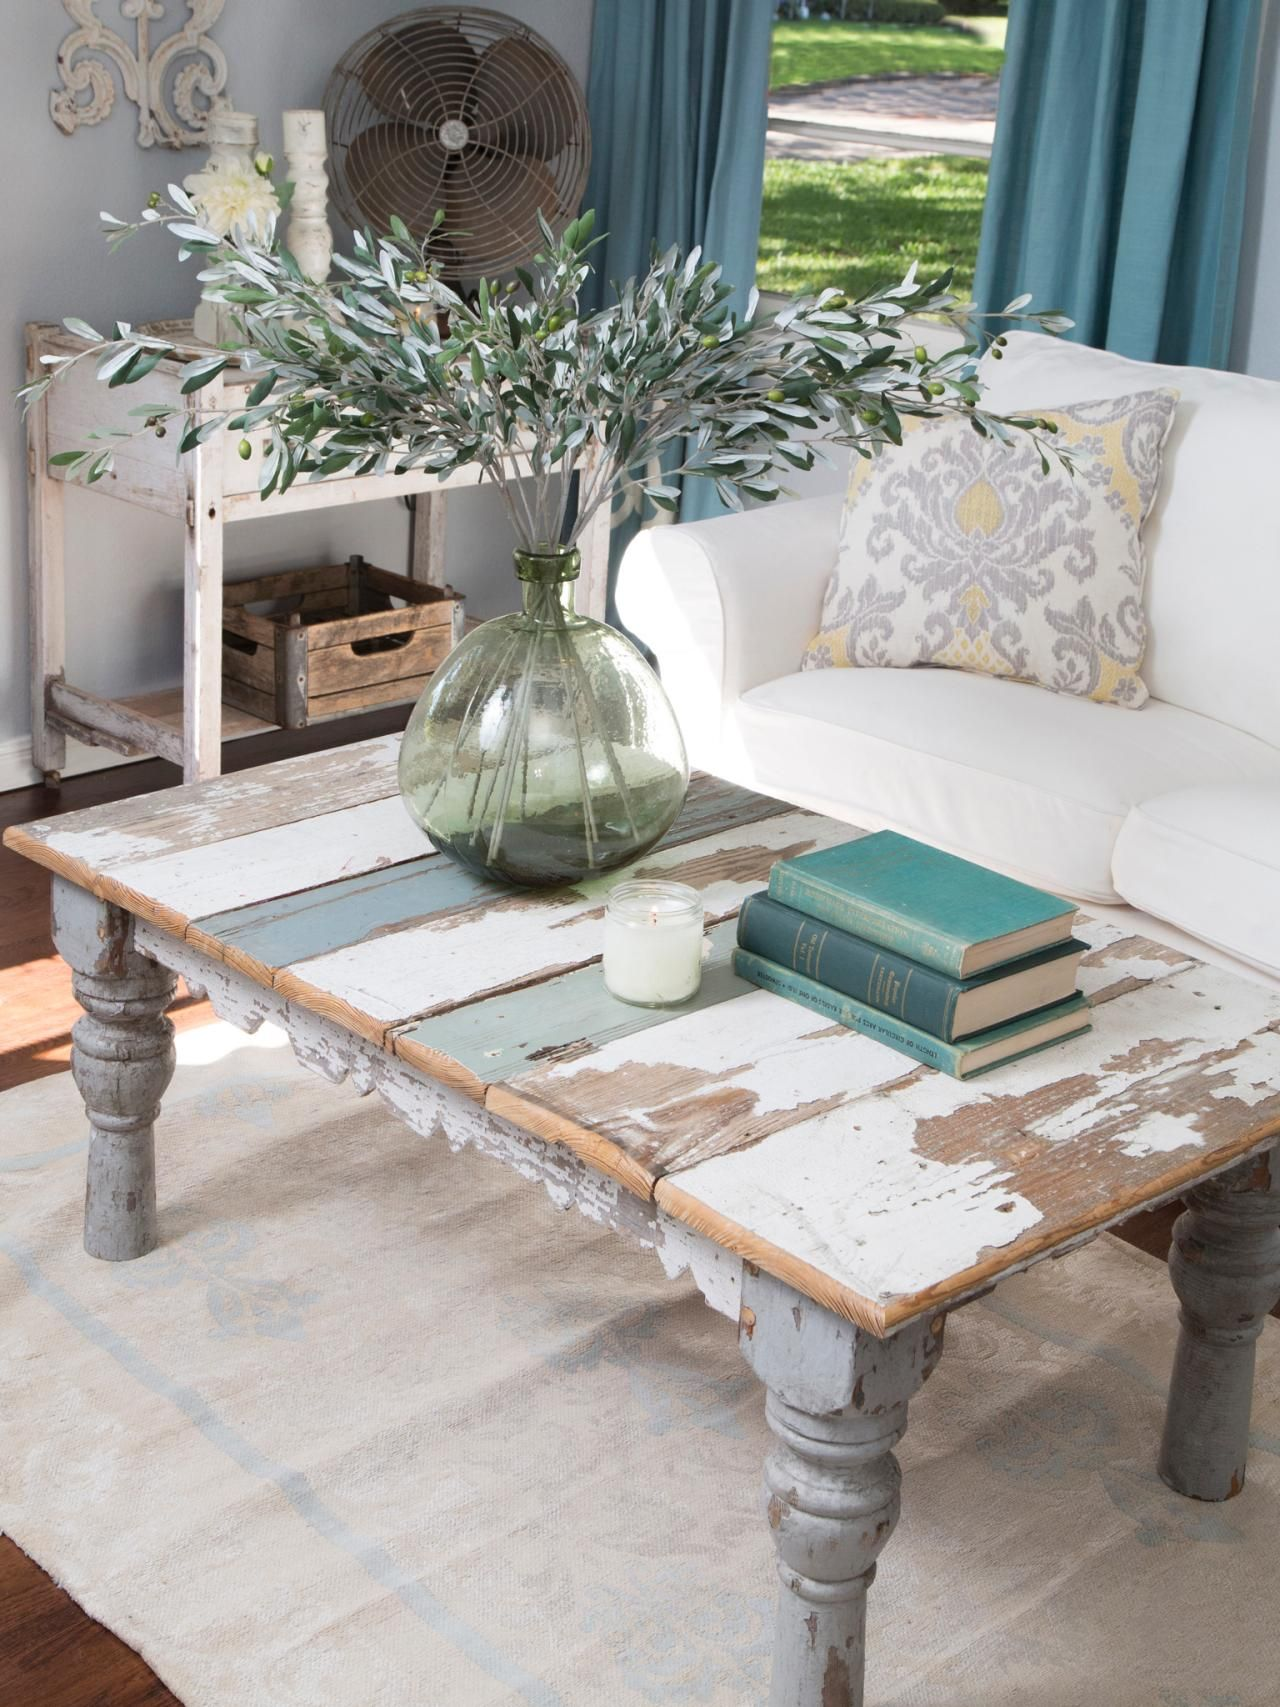 French Country Joanna Gaines Living Room Joanna Gaines Style On Pinterest Joanna Gaines Fixer